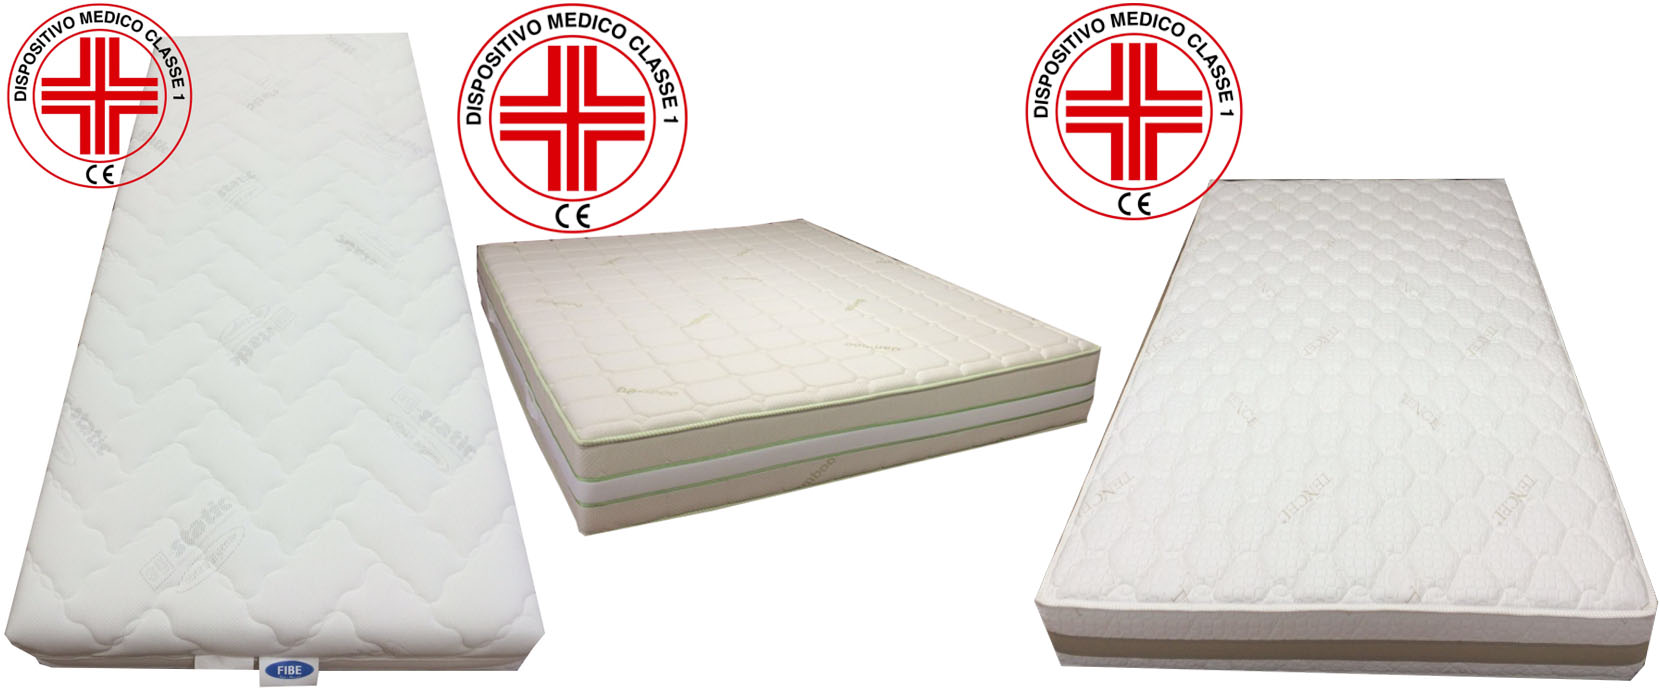 Mattresses in Switzerland Online Mattresses for Every Need